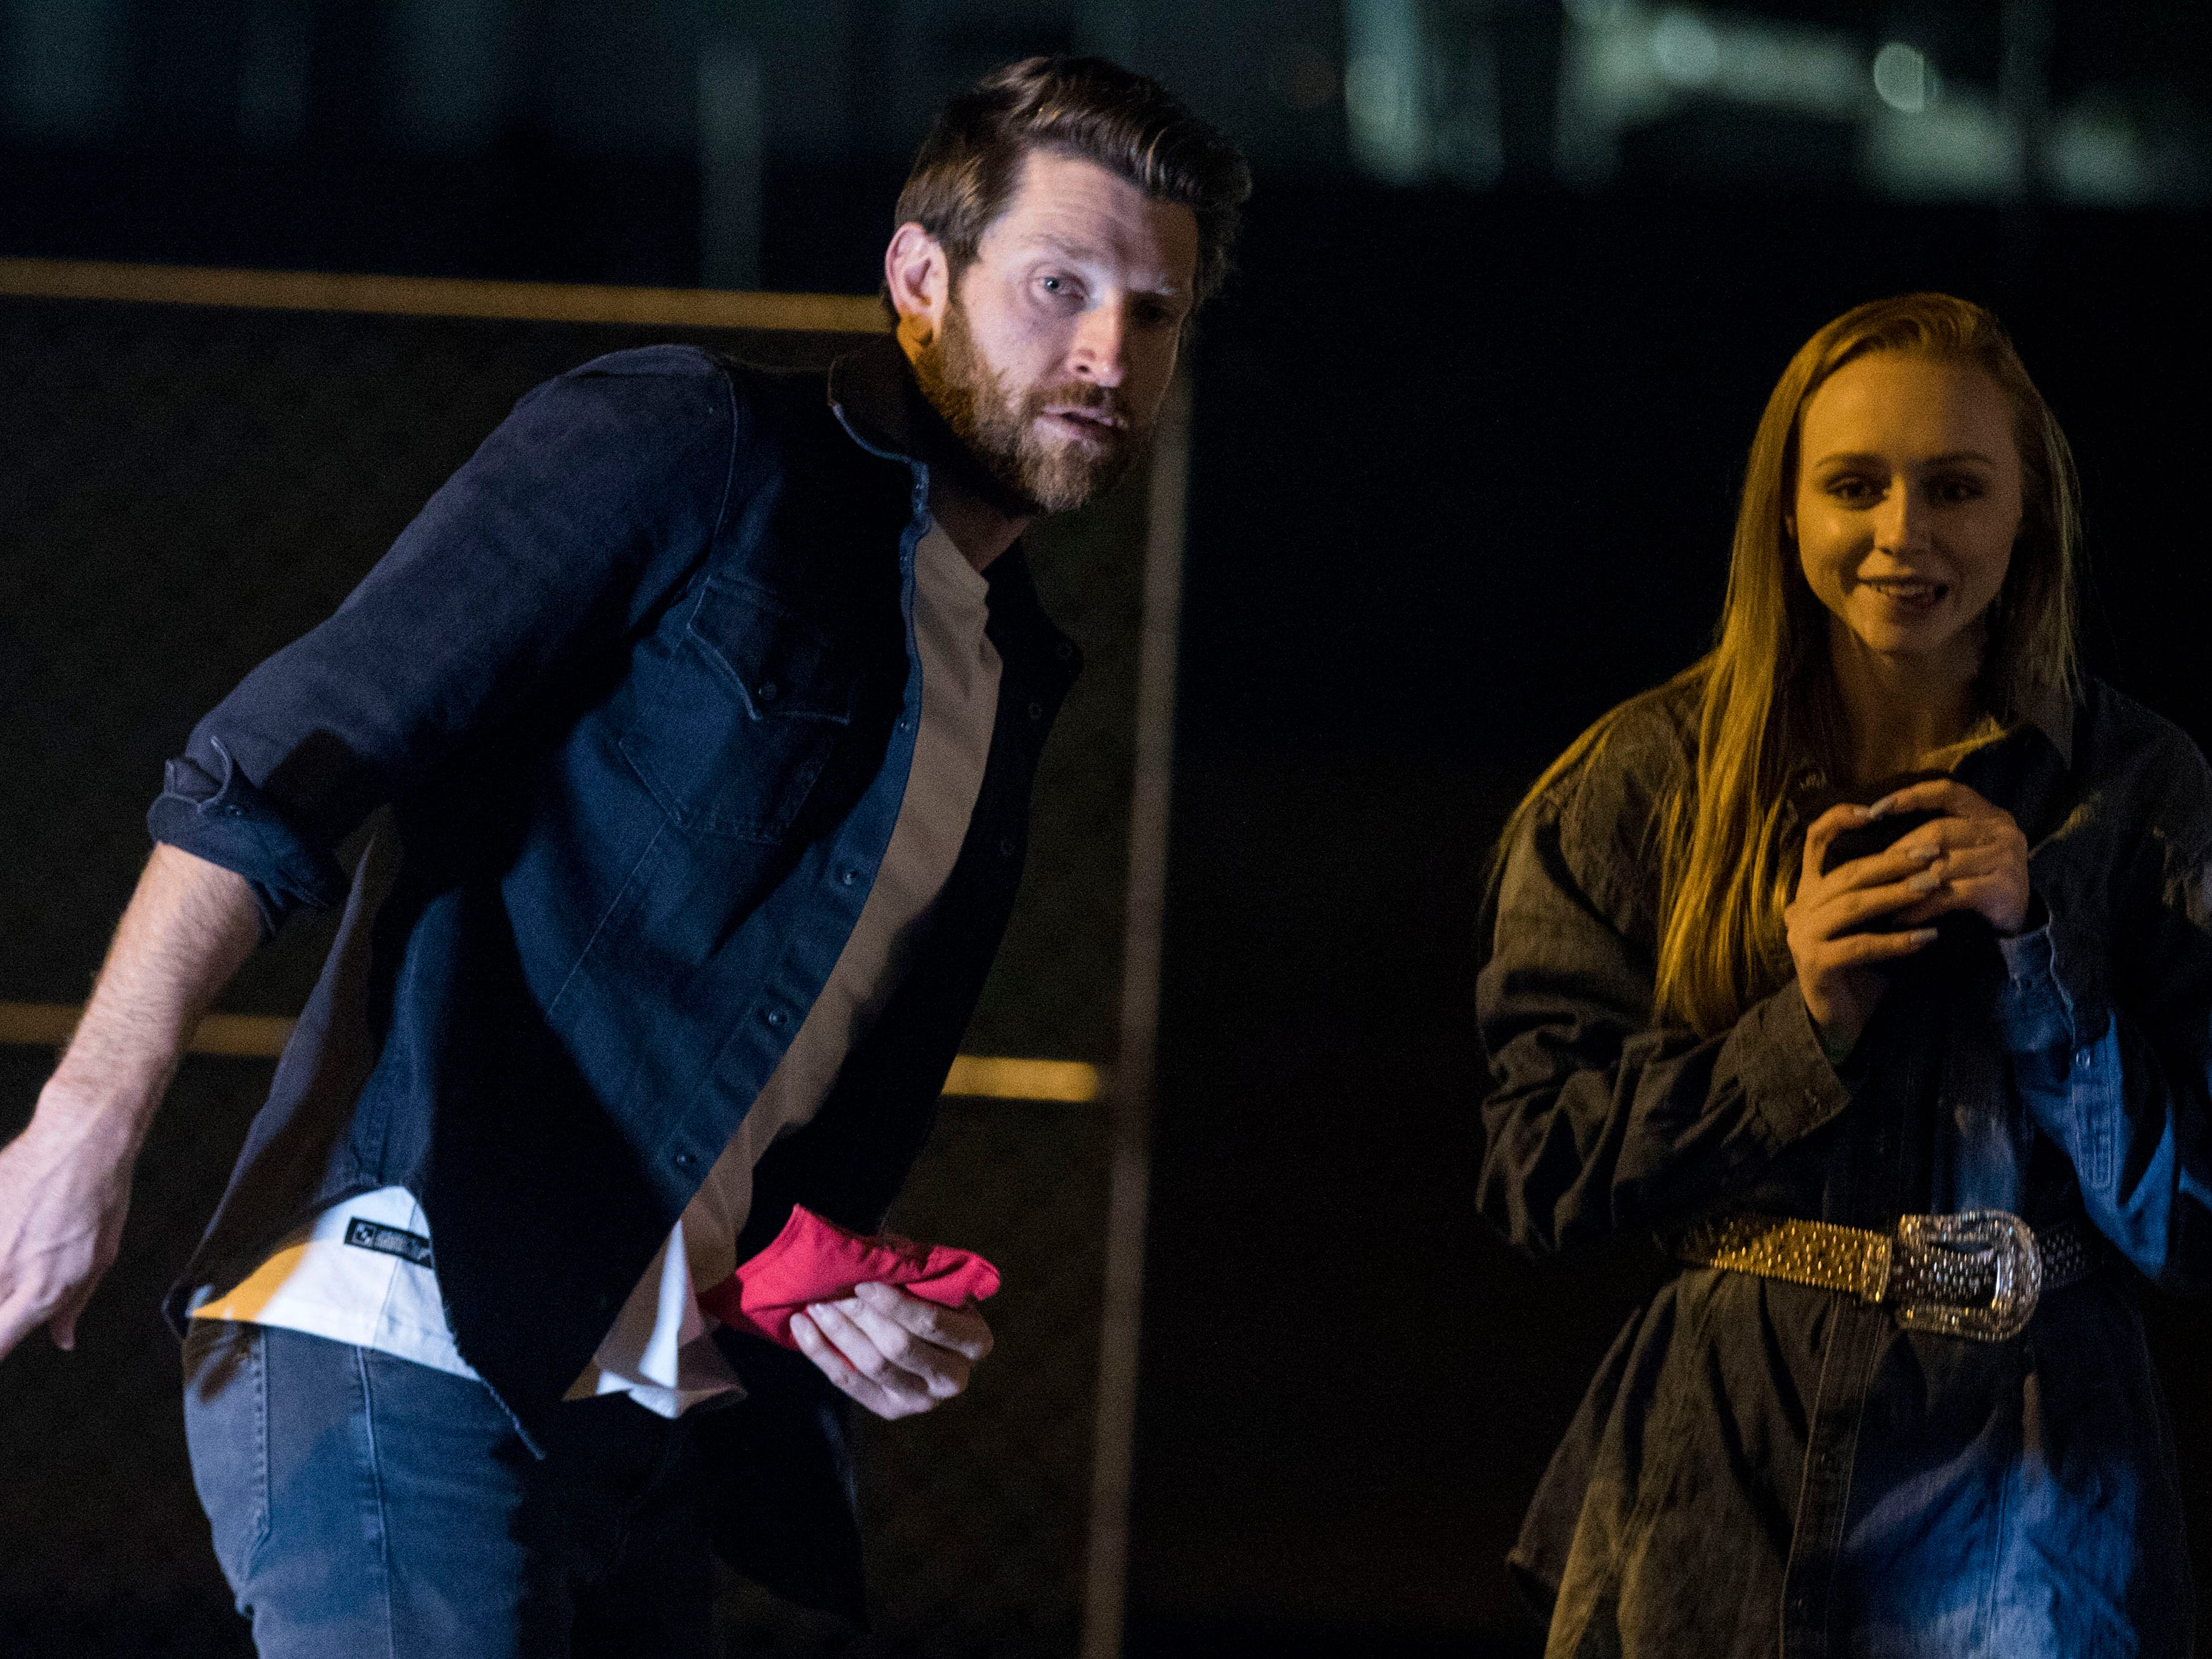 Country superstar Brett Eldredge hopes his body English will help as he plays a game of cornhole with a lucky young lady. Kayla Coffey of Tucson was picked from the audience for the chance meeting with Eldredge while at Country Thunder Arizona on April 11, 2019, in Florence, Ariz.